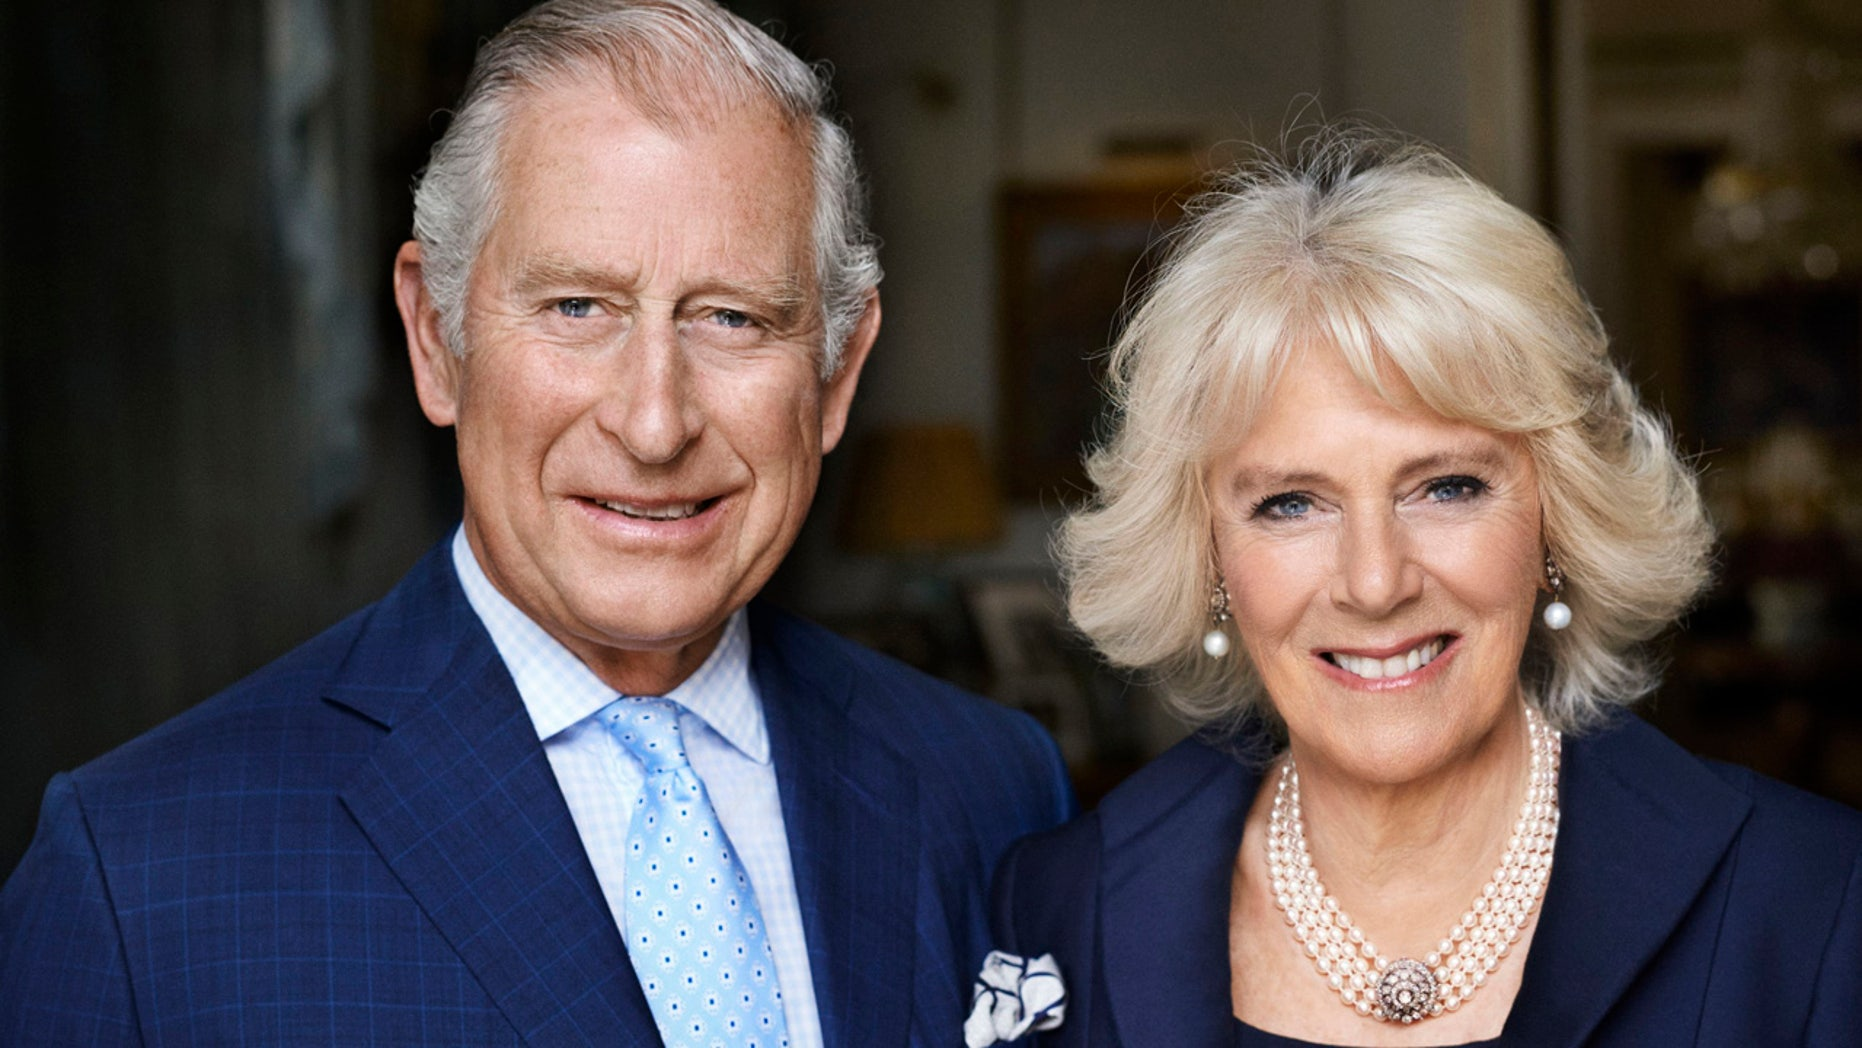 Britain's Prince Charles and his wife Camilla, Duchess of Cornwall in Clarence House, London.